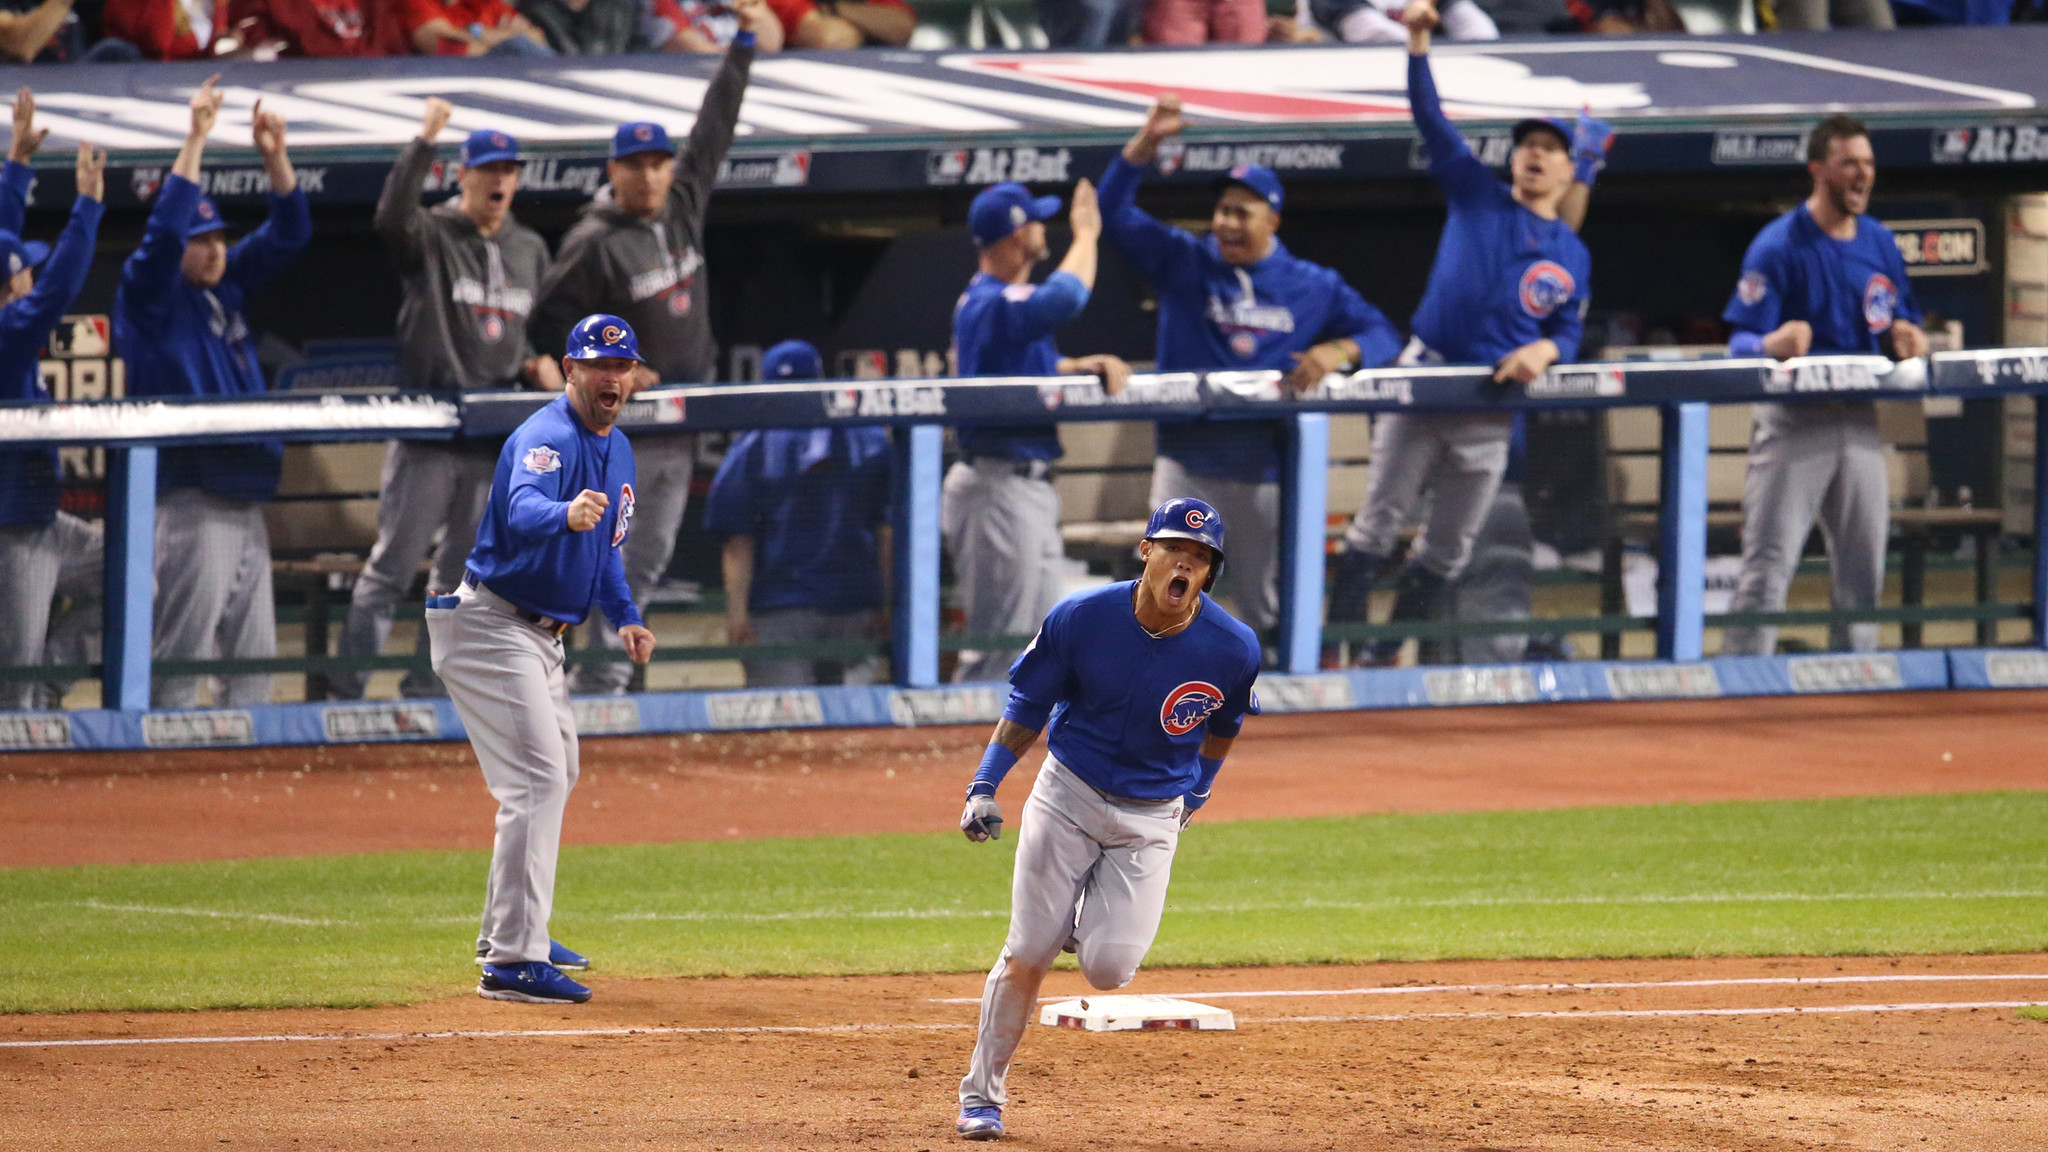 World series game 6 cubs 9 indians 3